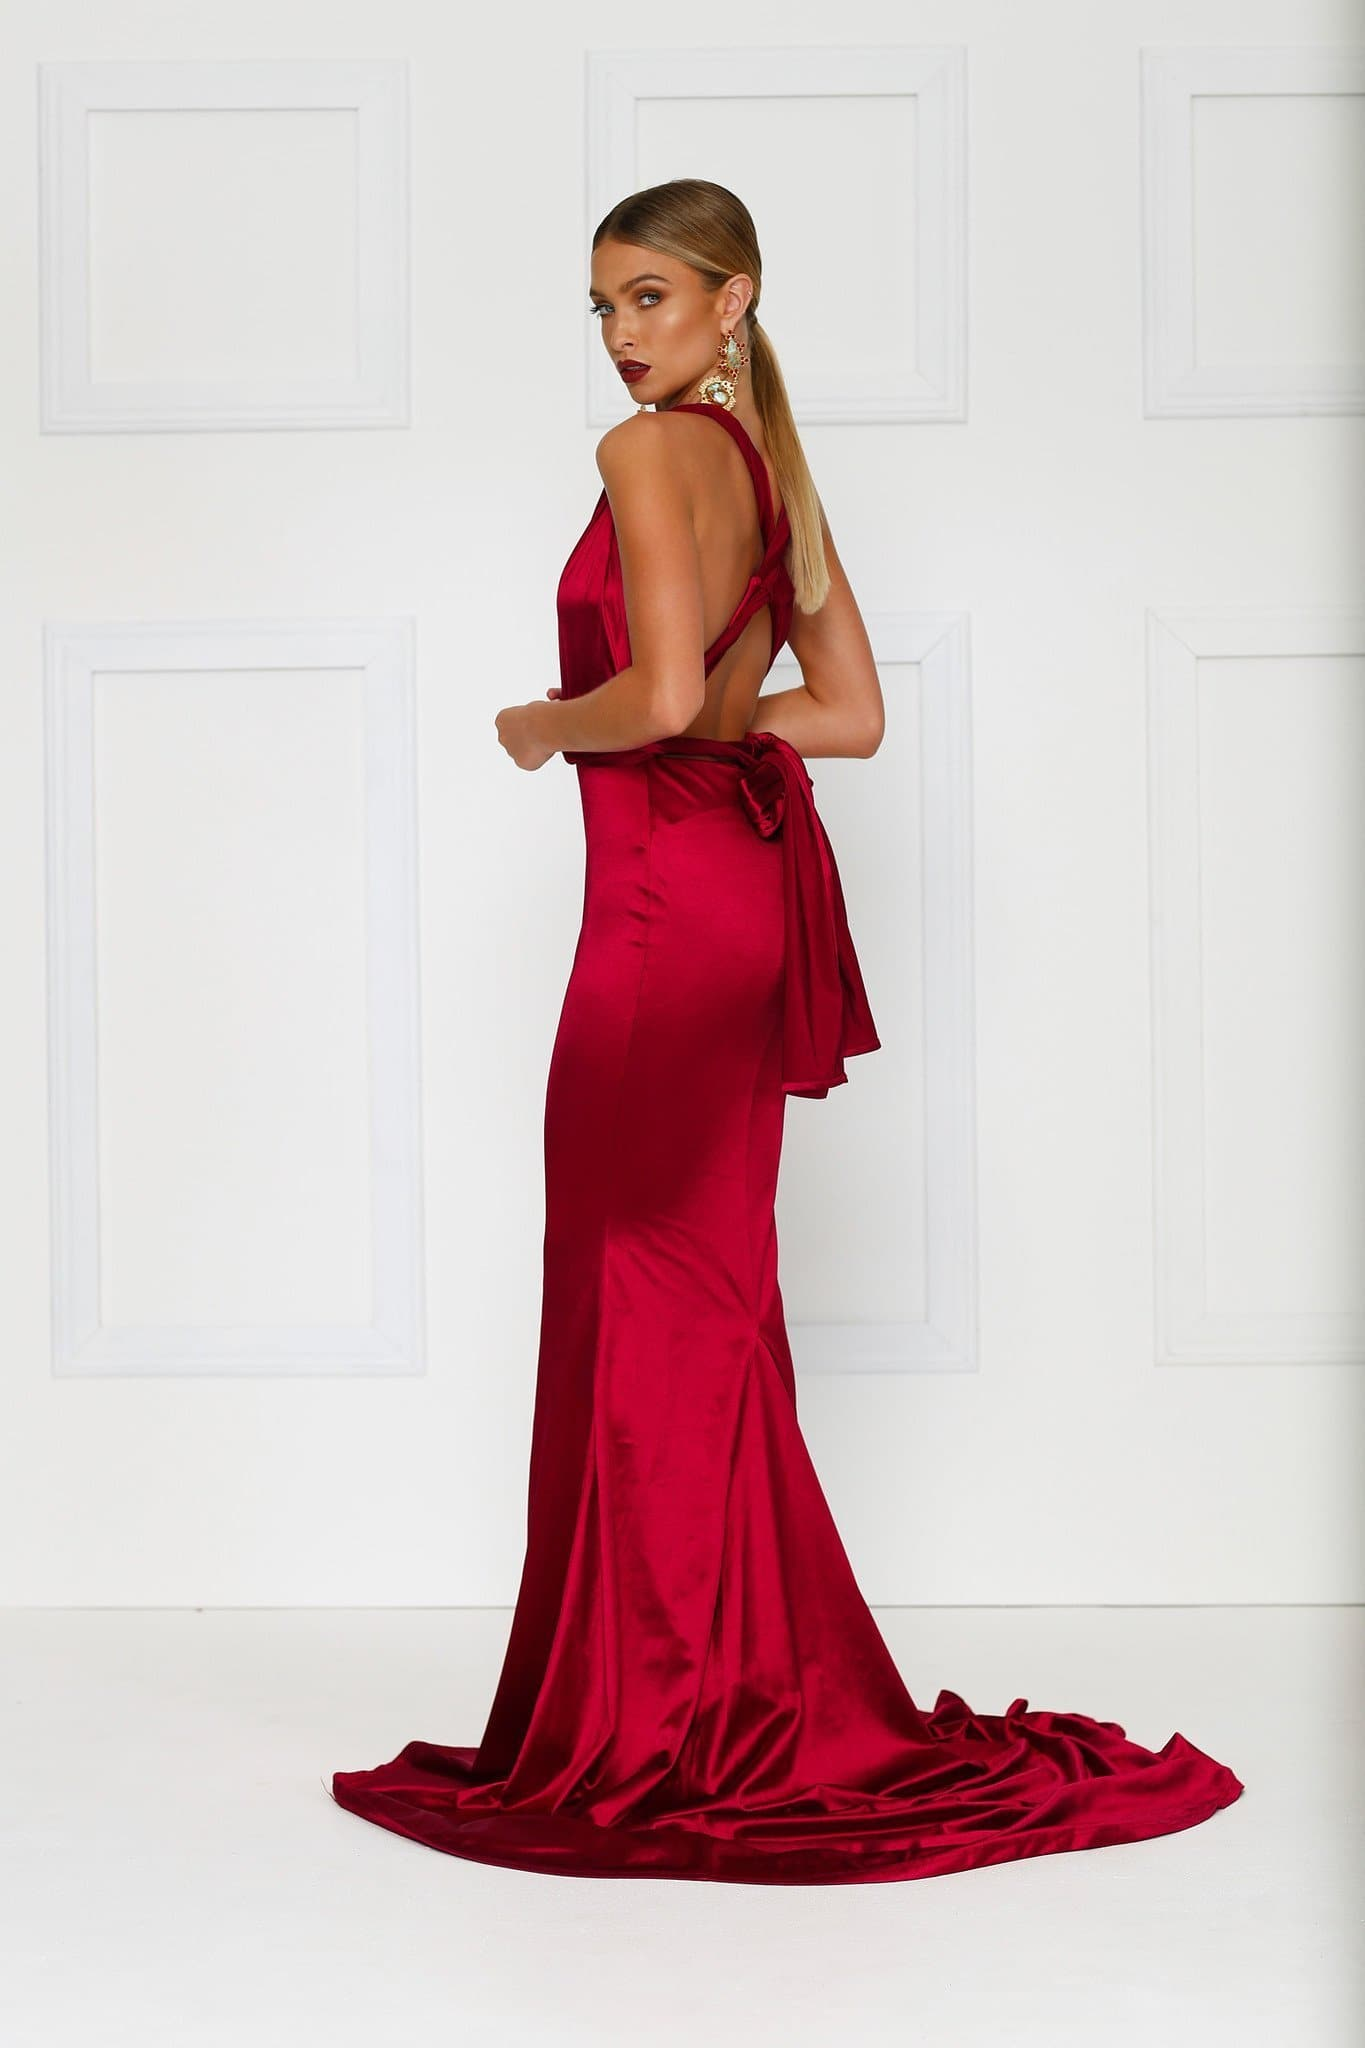 Lena Multiway Gown - Wine Red Prom Dress in Satin Fabric